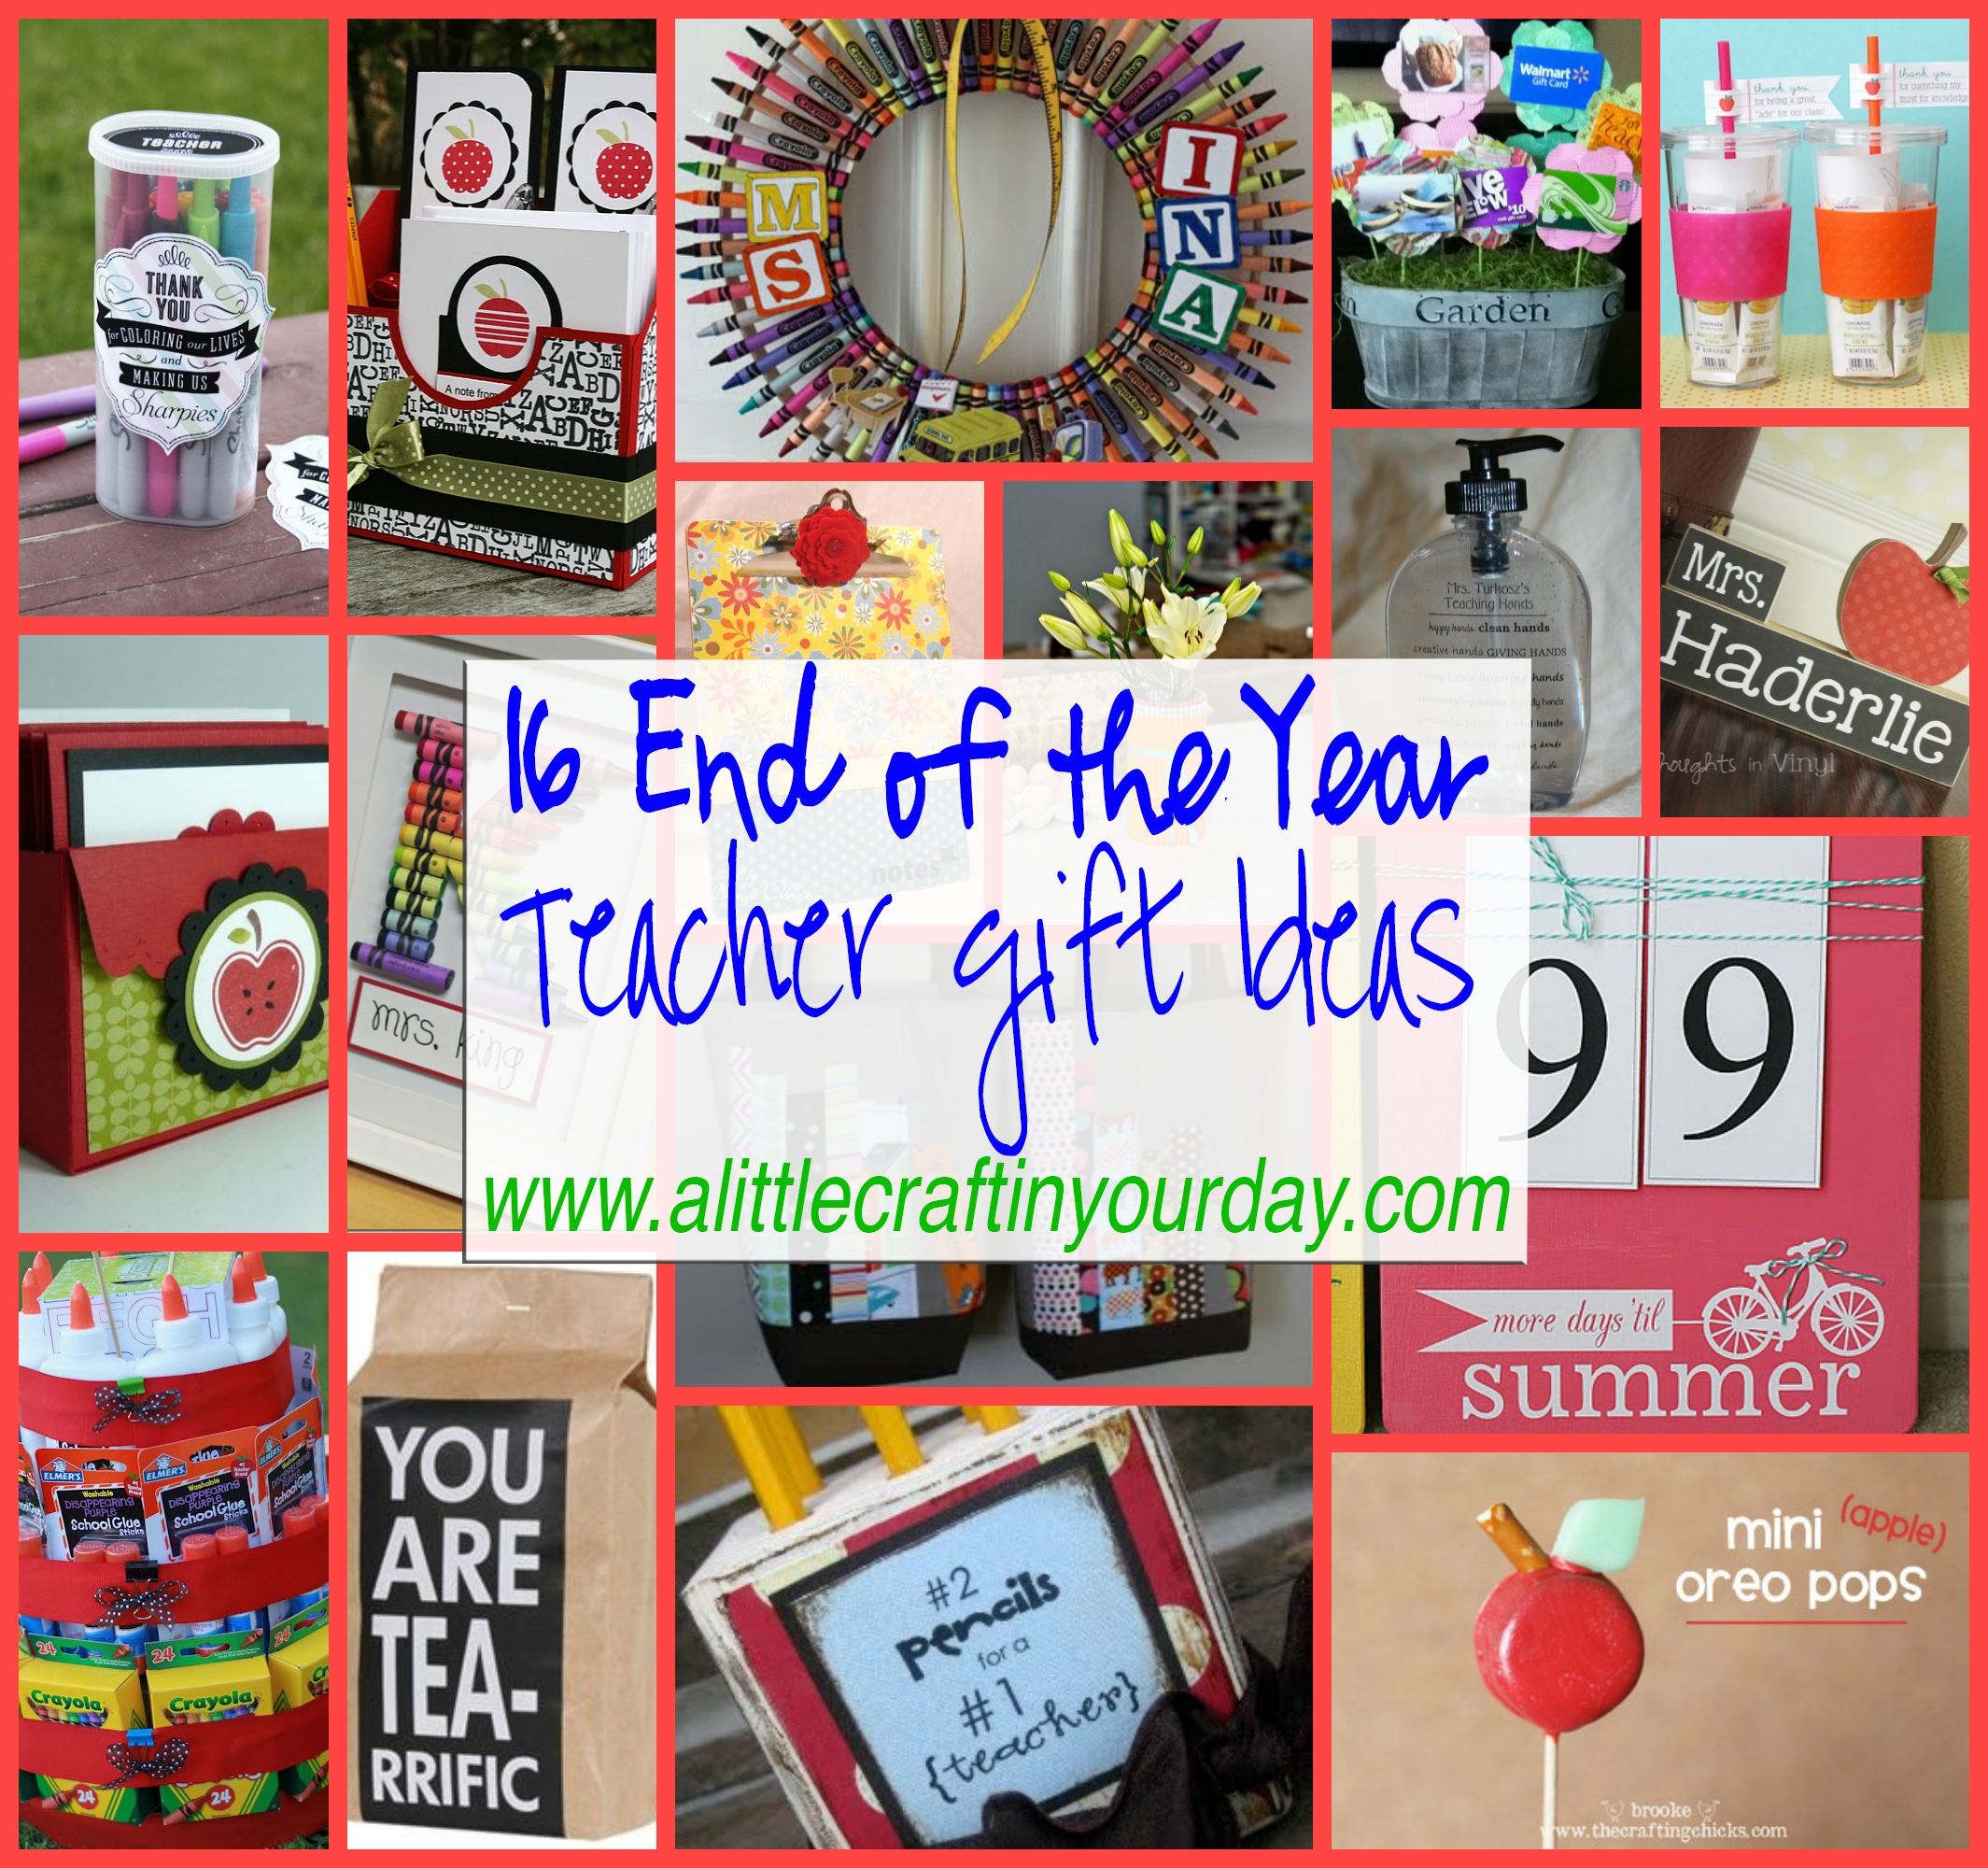 10 Amazing End Of Year Teacher Gift Ideas 16 end of the year teacher gift ideas a little craft in your day 9 2020